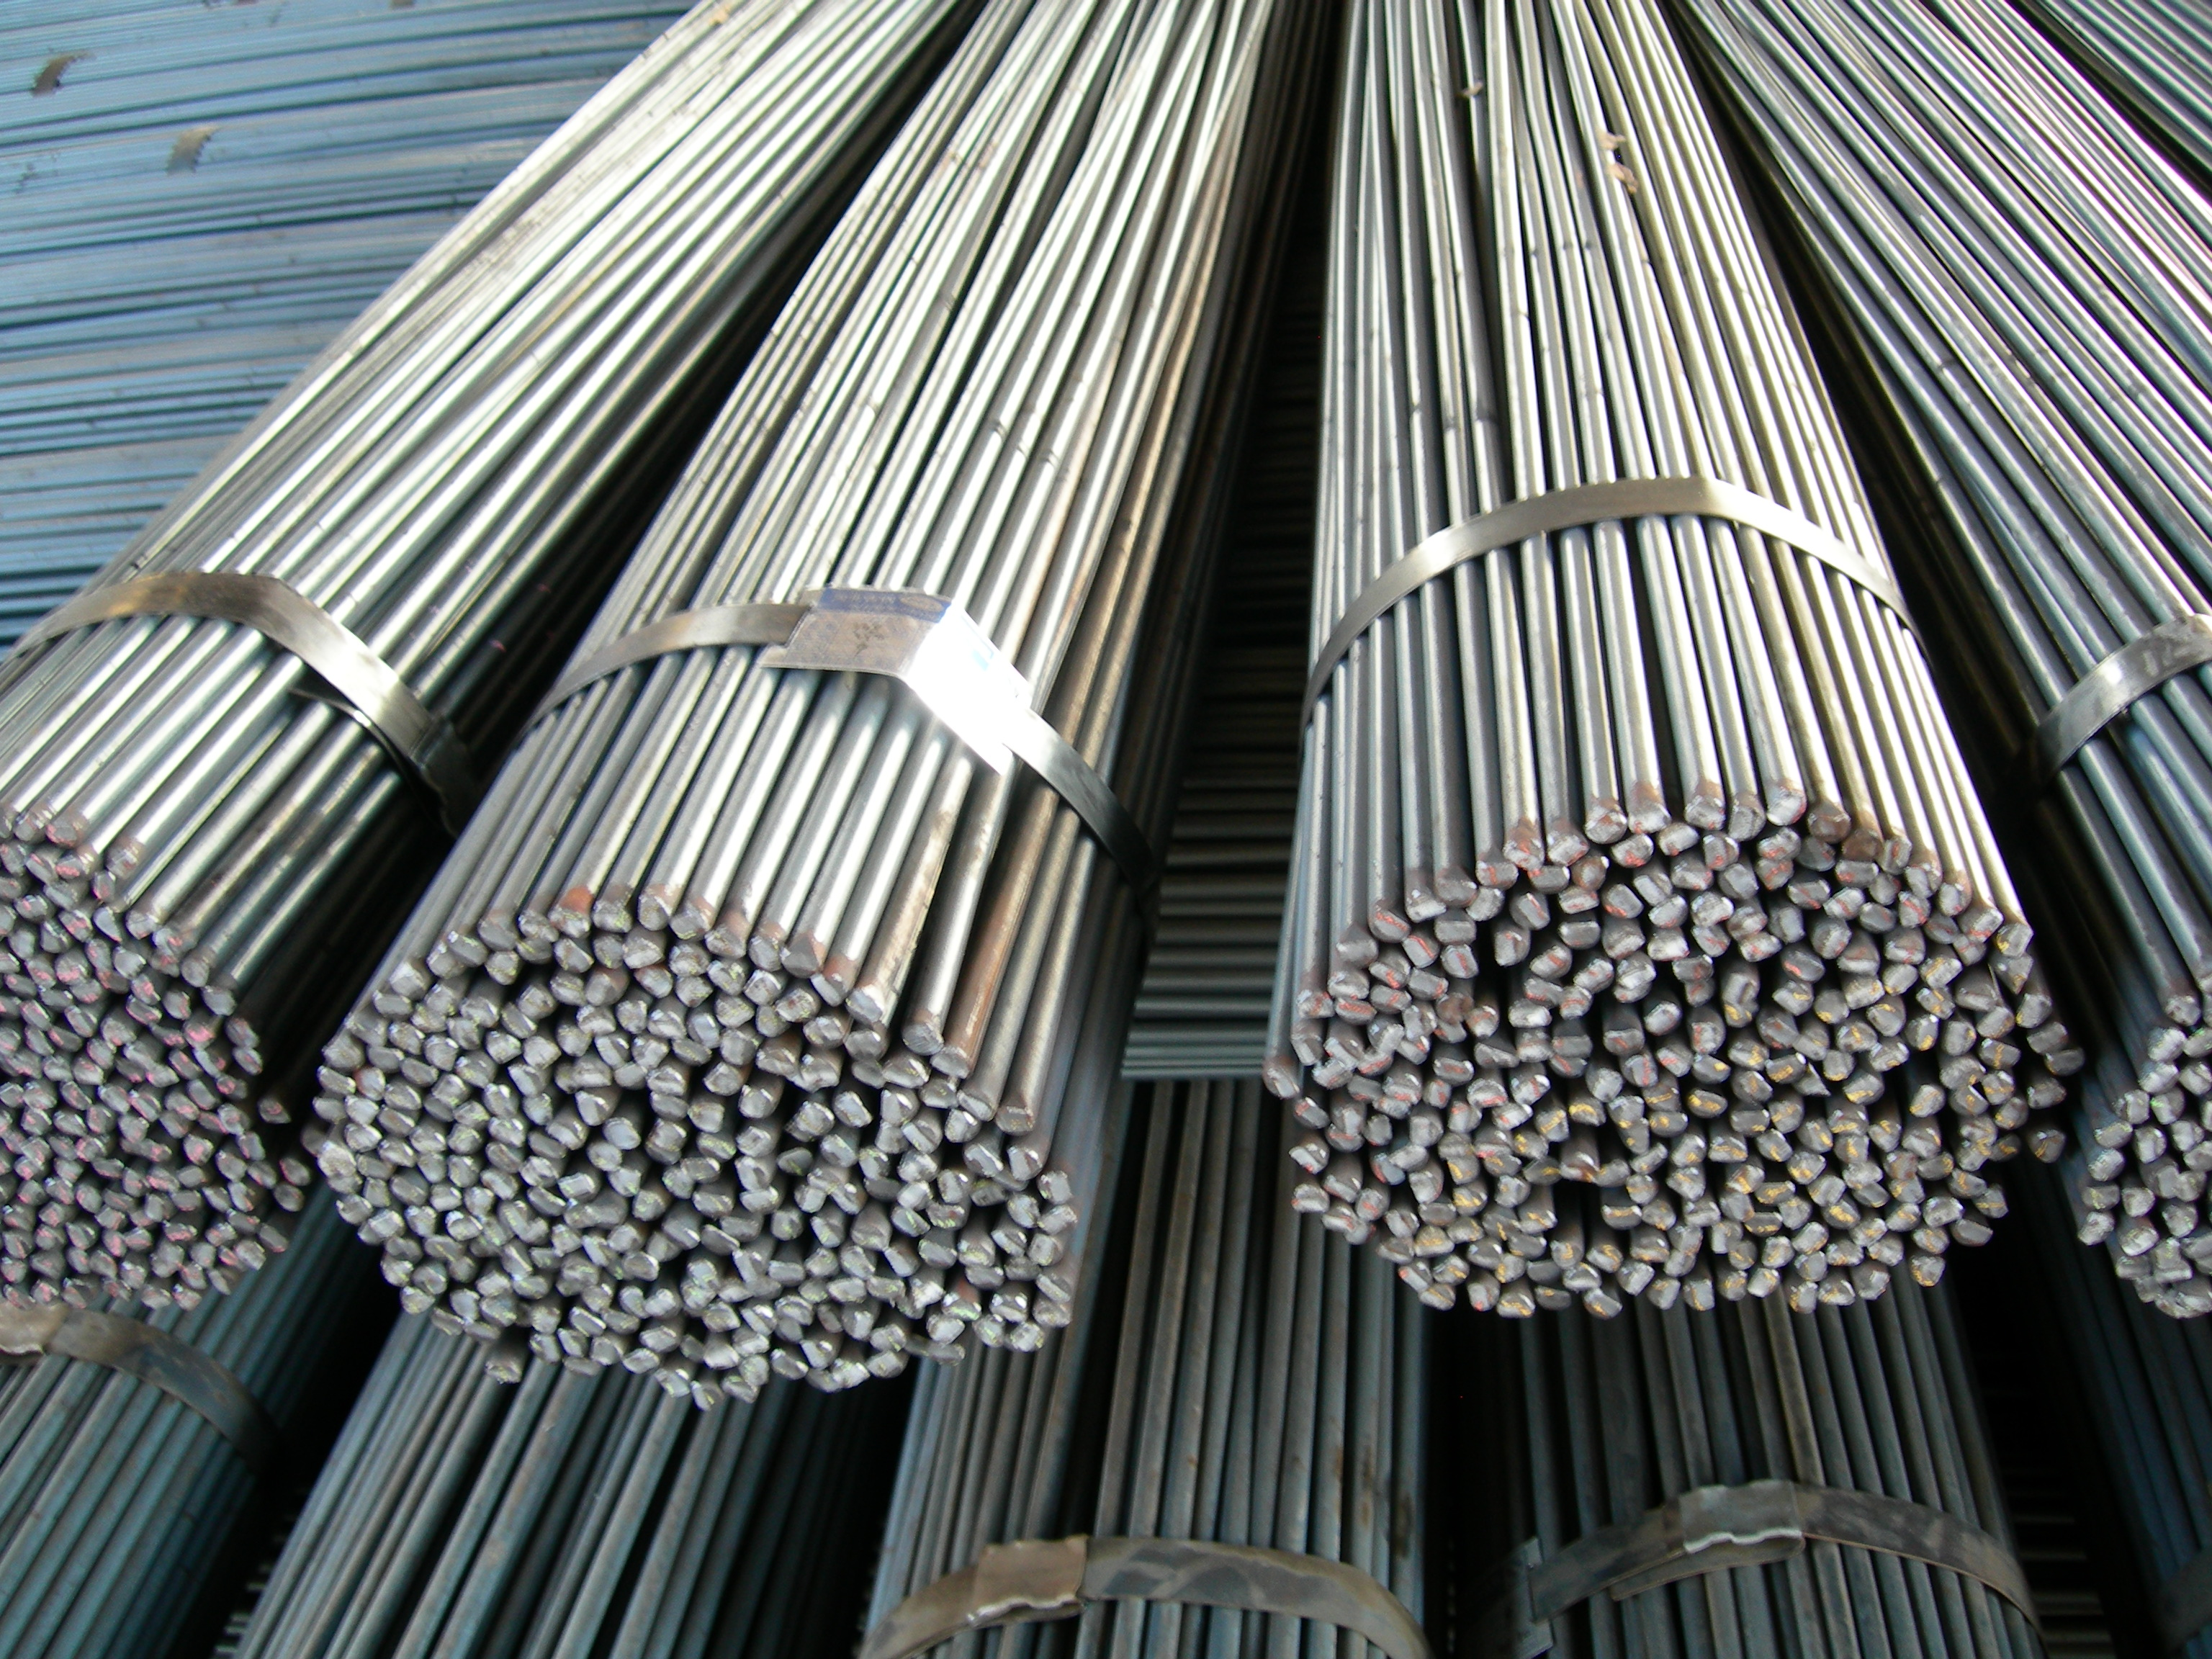 Round Bar 5mm-100mm GBQ195 Q235 Hot Rolled High Quality